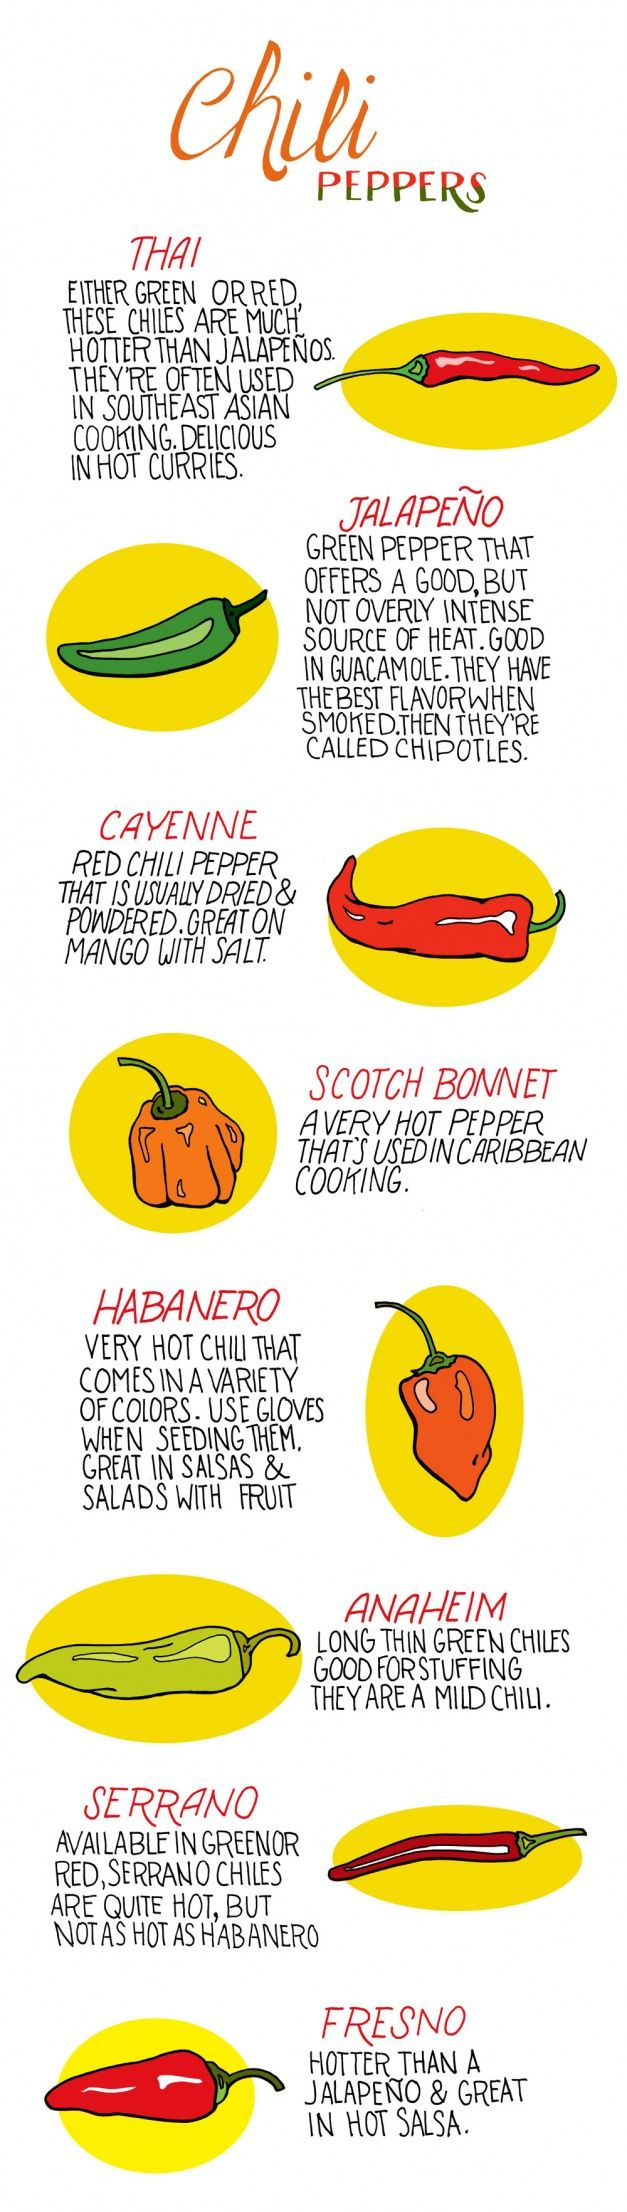 Chipotle are smoked jalapeño peppers - guide to chili peppers